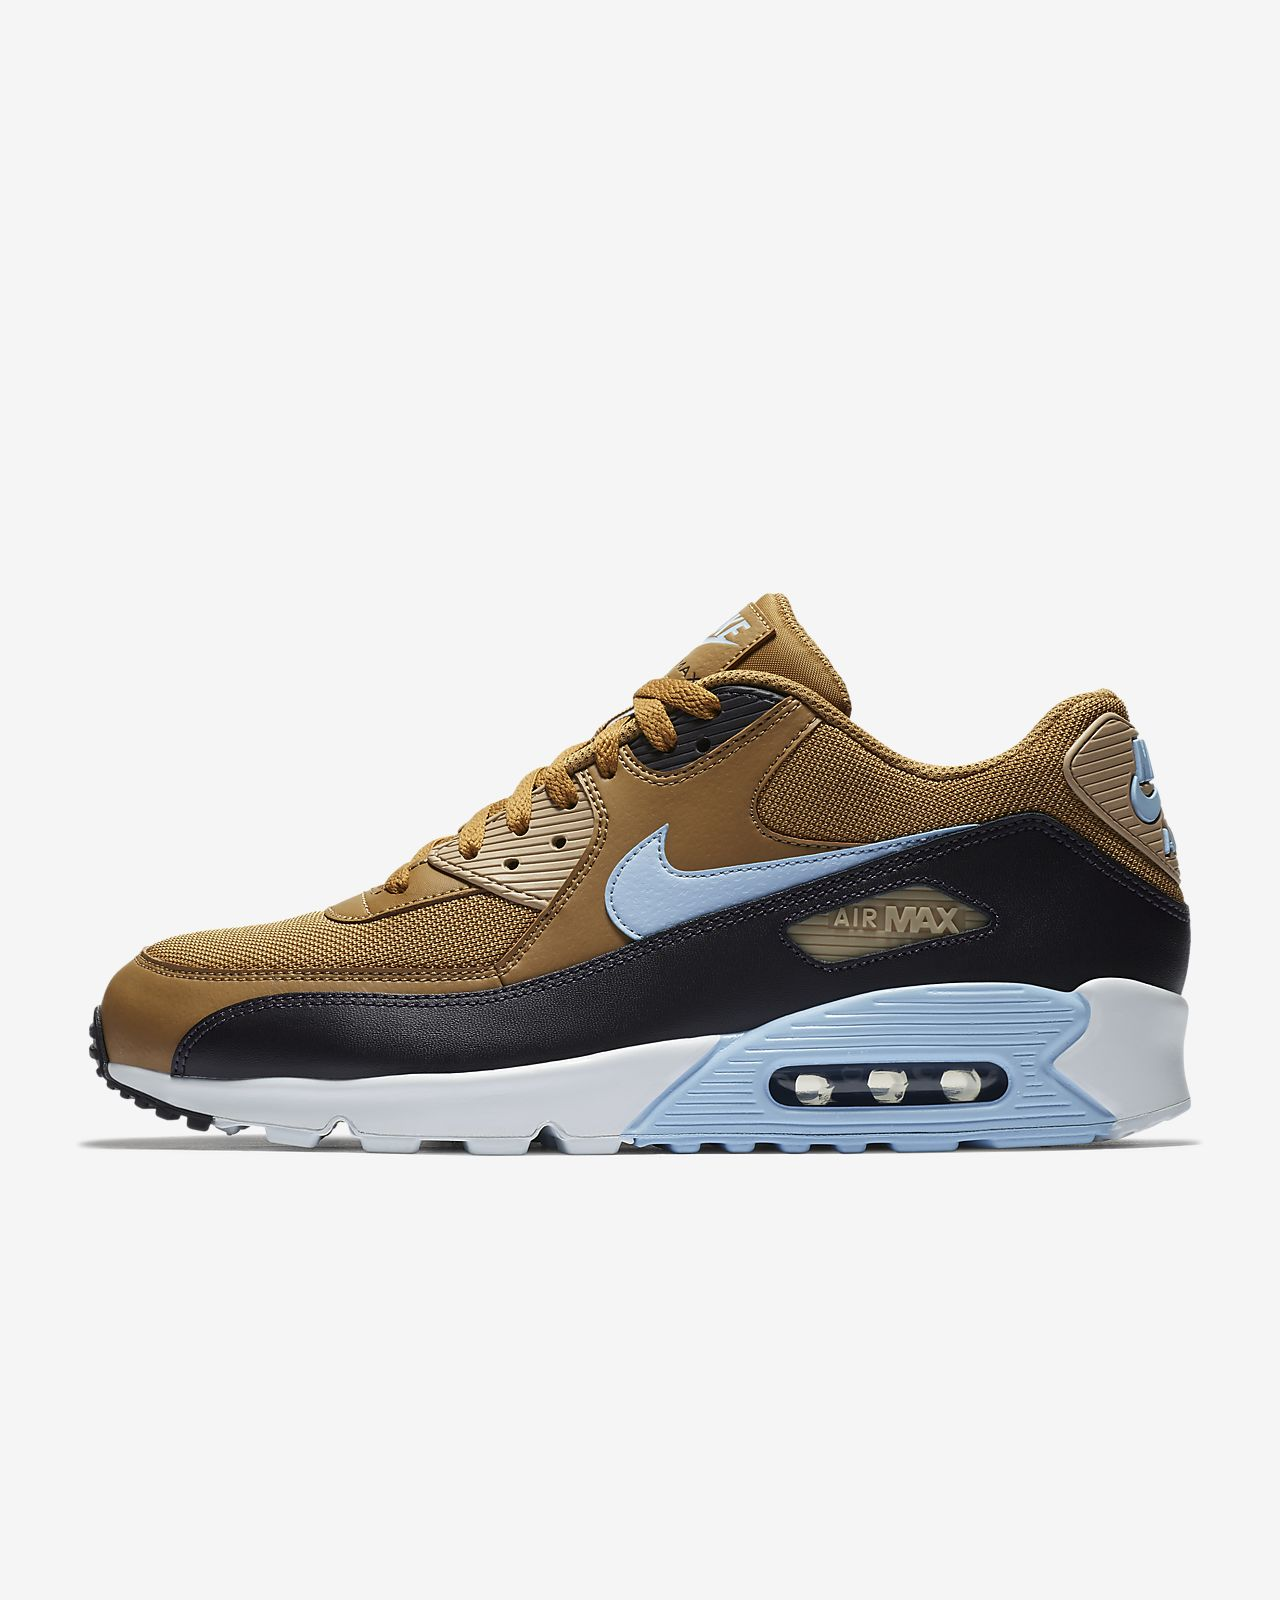 MEN'S NIKE AIR MAX 90 ESSENTIAL MEDIUM OLIVEMEDIUM OLIVE VELVET BROWN